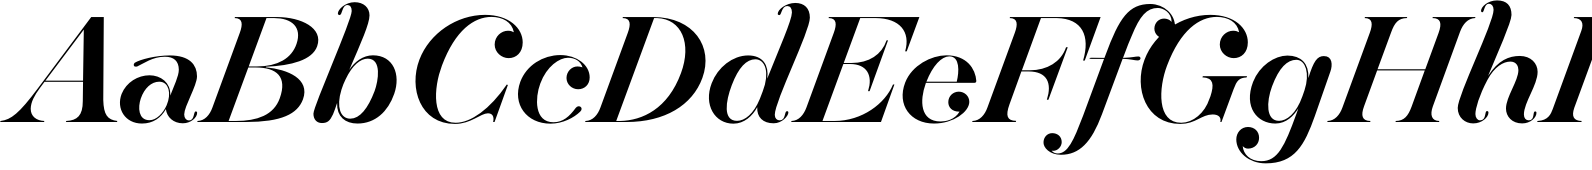 Hera Big Regular Italic